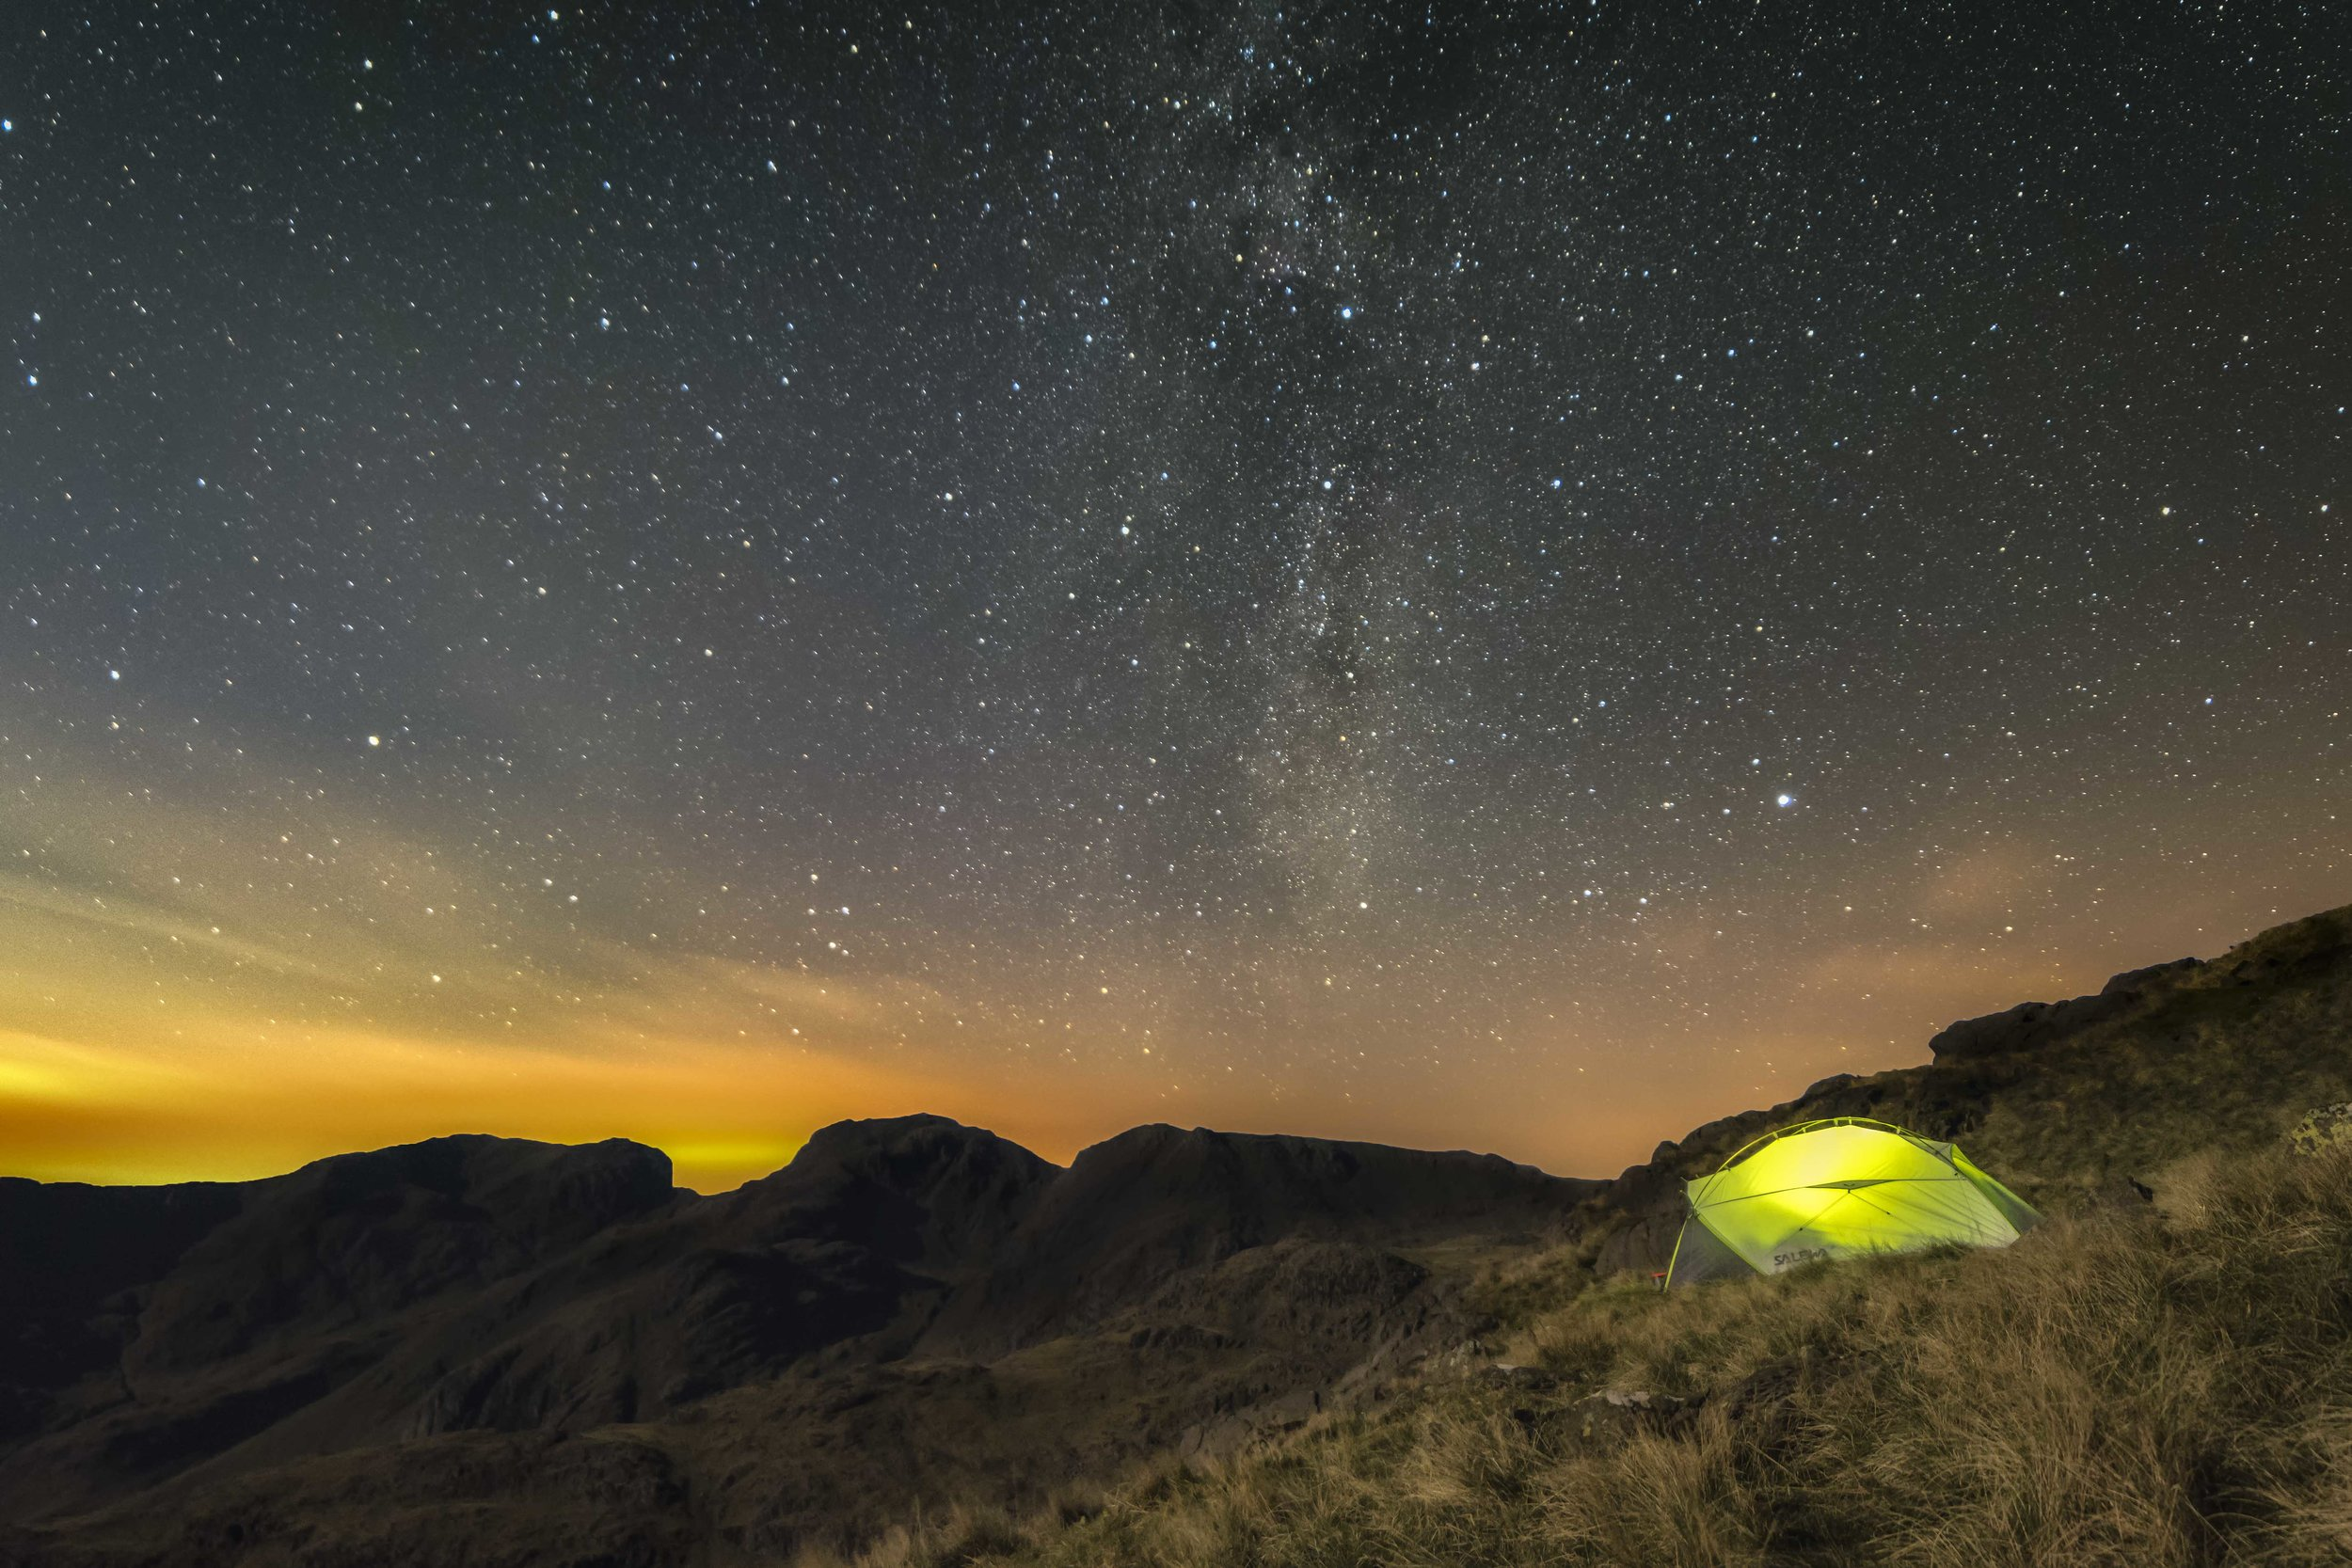 Friday/sat 3rd may 2019 -wild camping Astrophotography workshop - Join me in The Lake District, camping high up in the fells, where you will learn the art of night sky photography.£75 per person